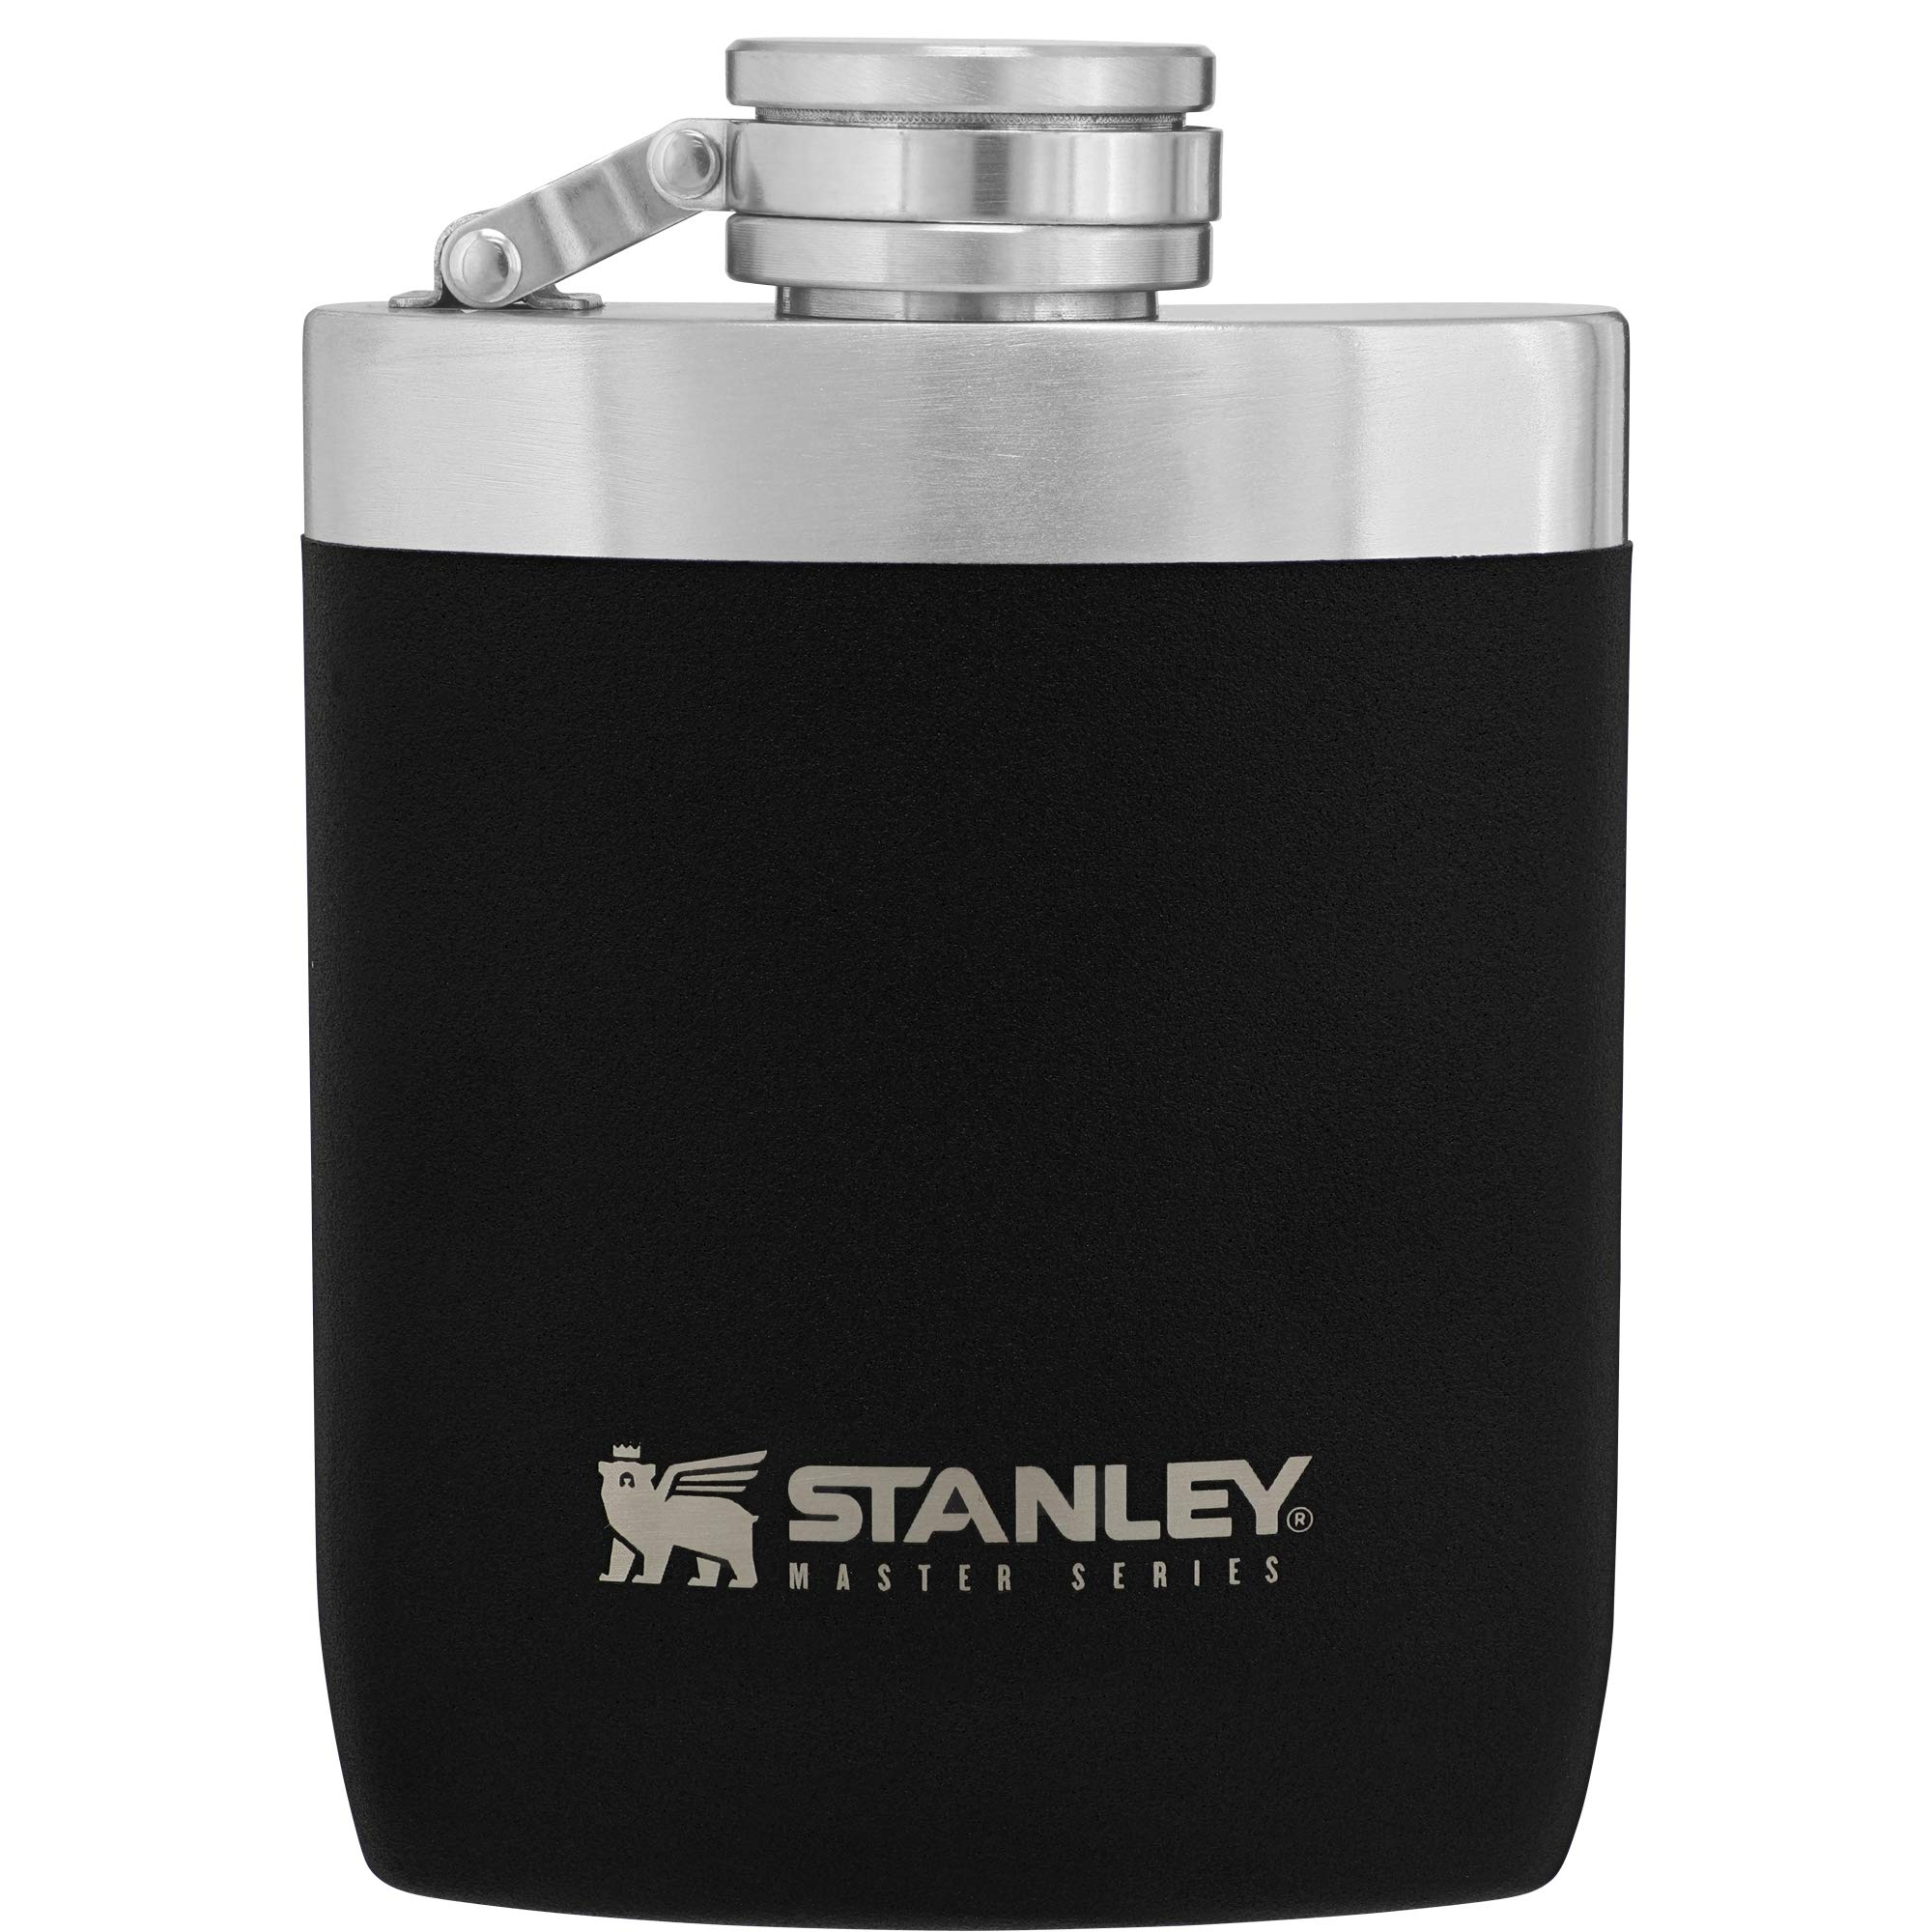 Stanley Master Series Hip Flask 8oz by Stanley